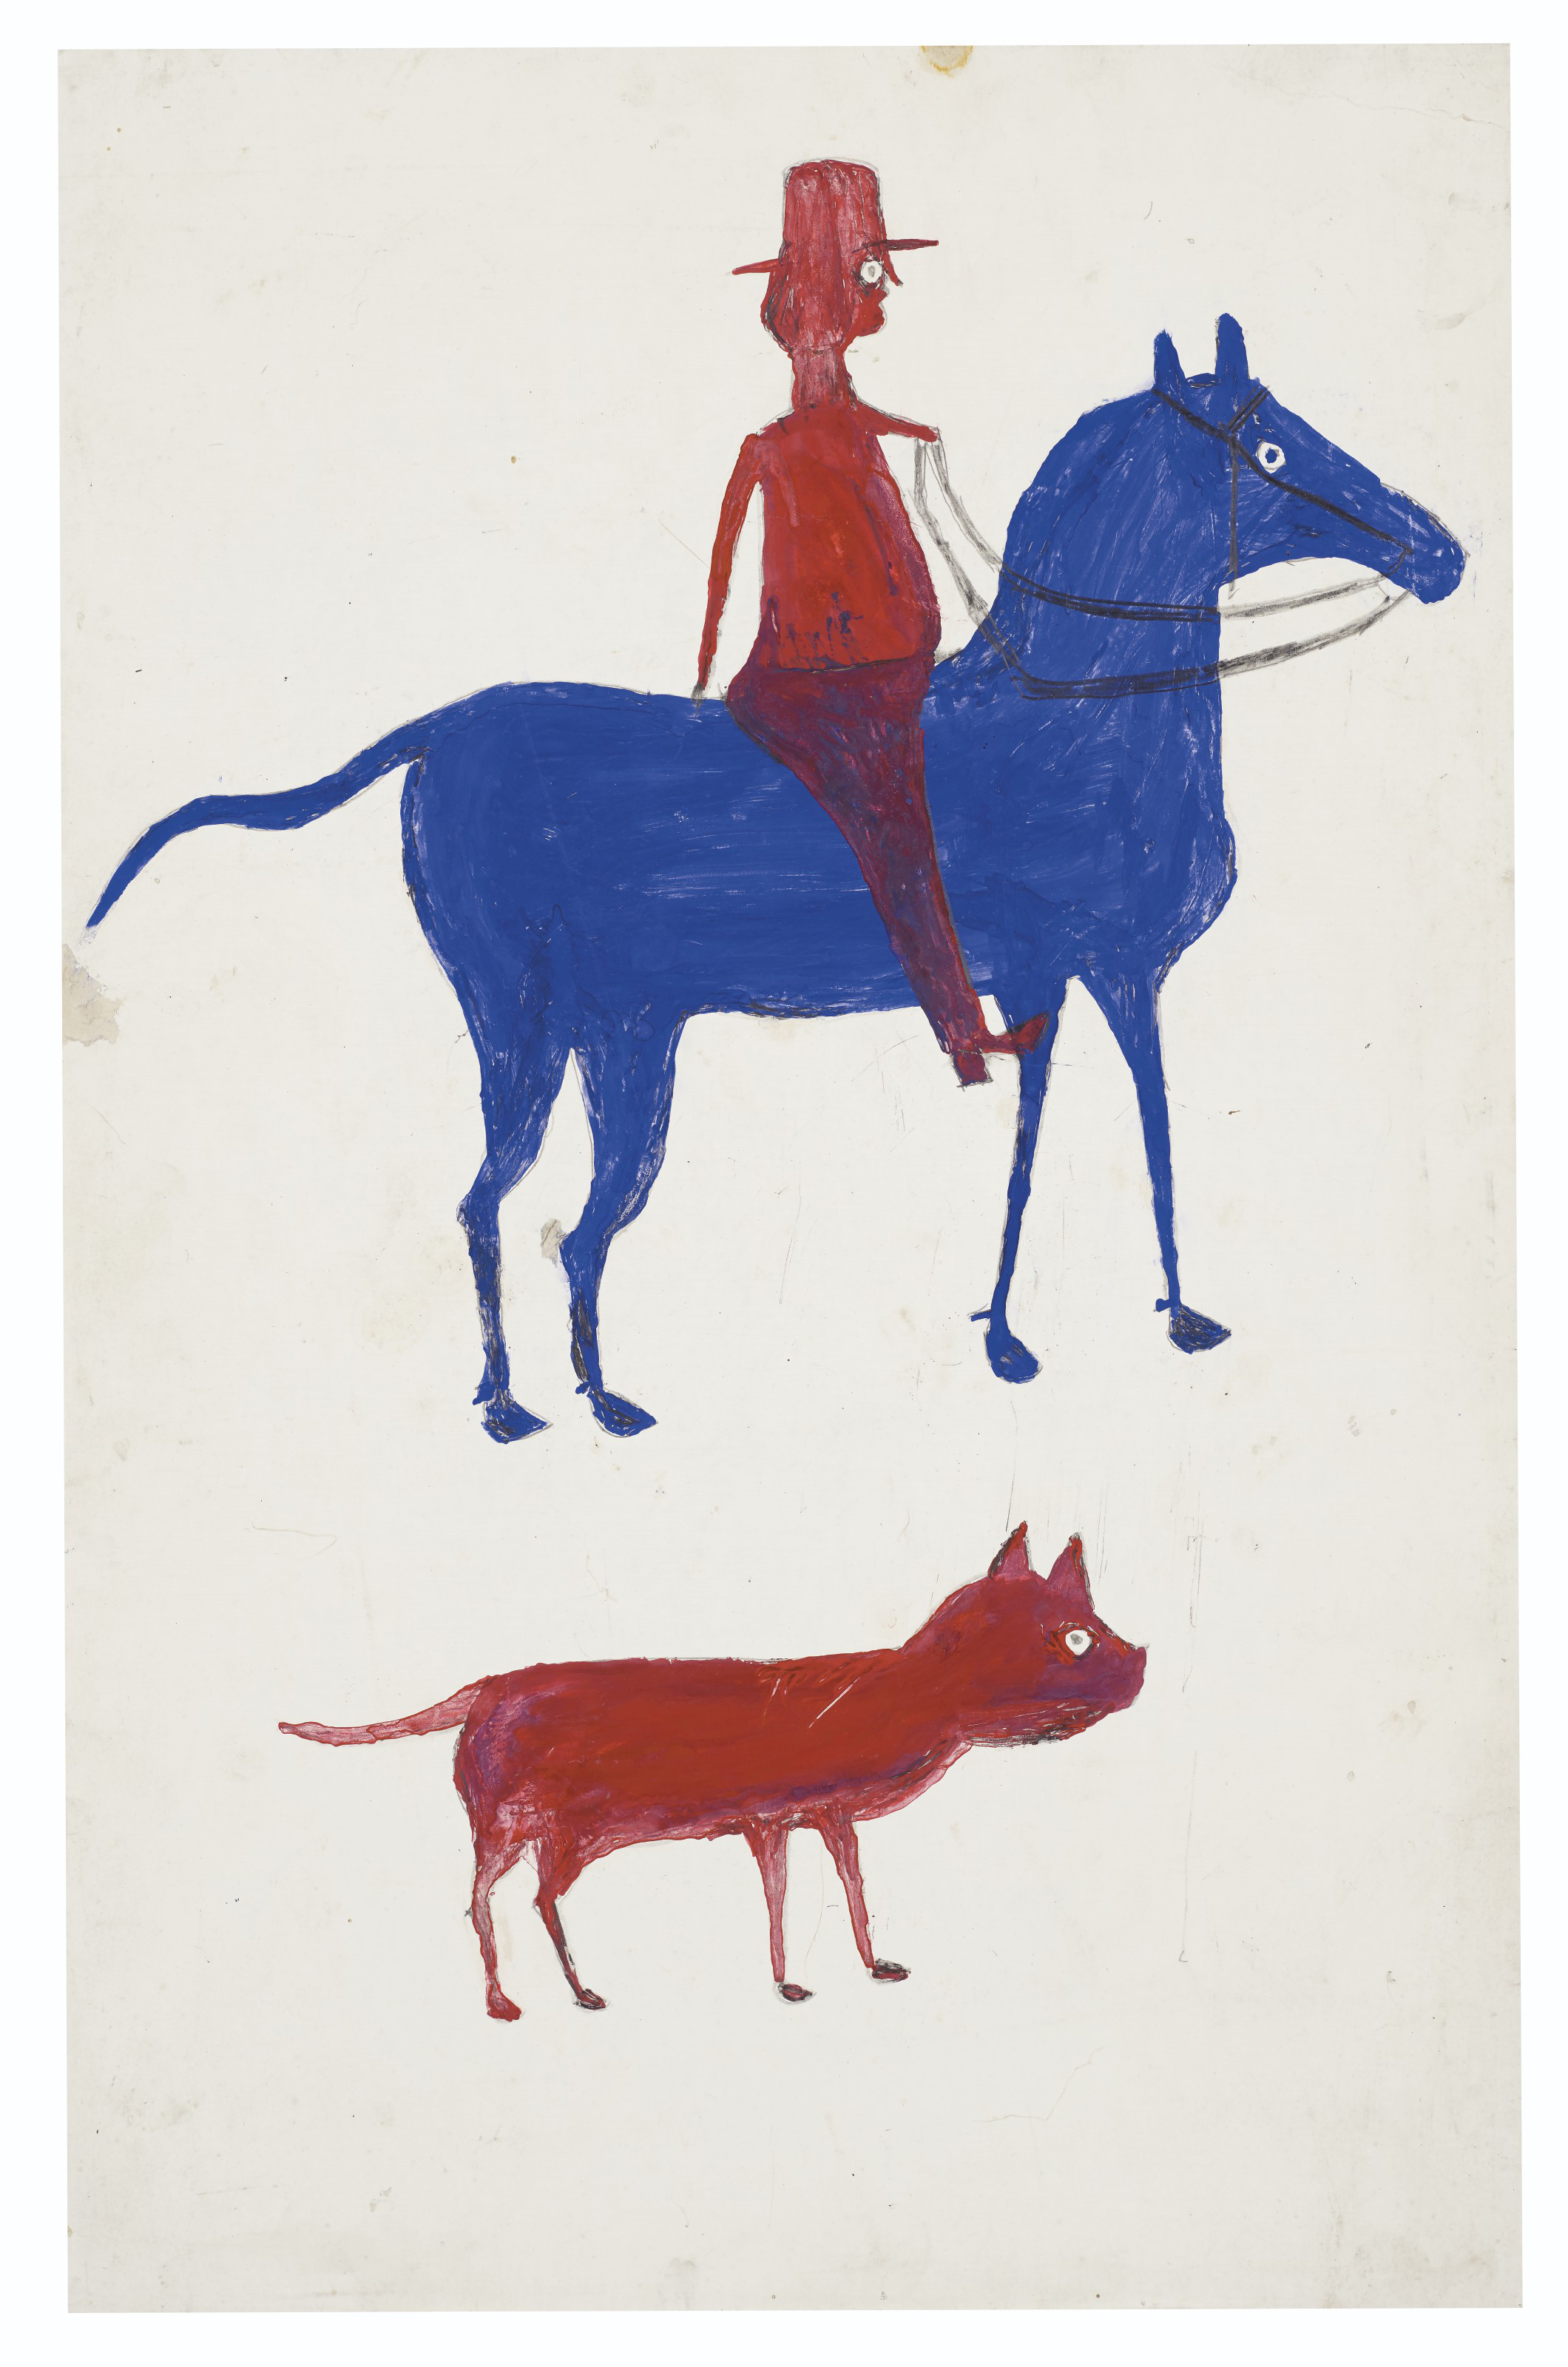 A man on horseback with a red dog below.